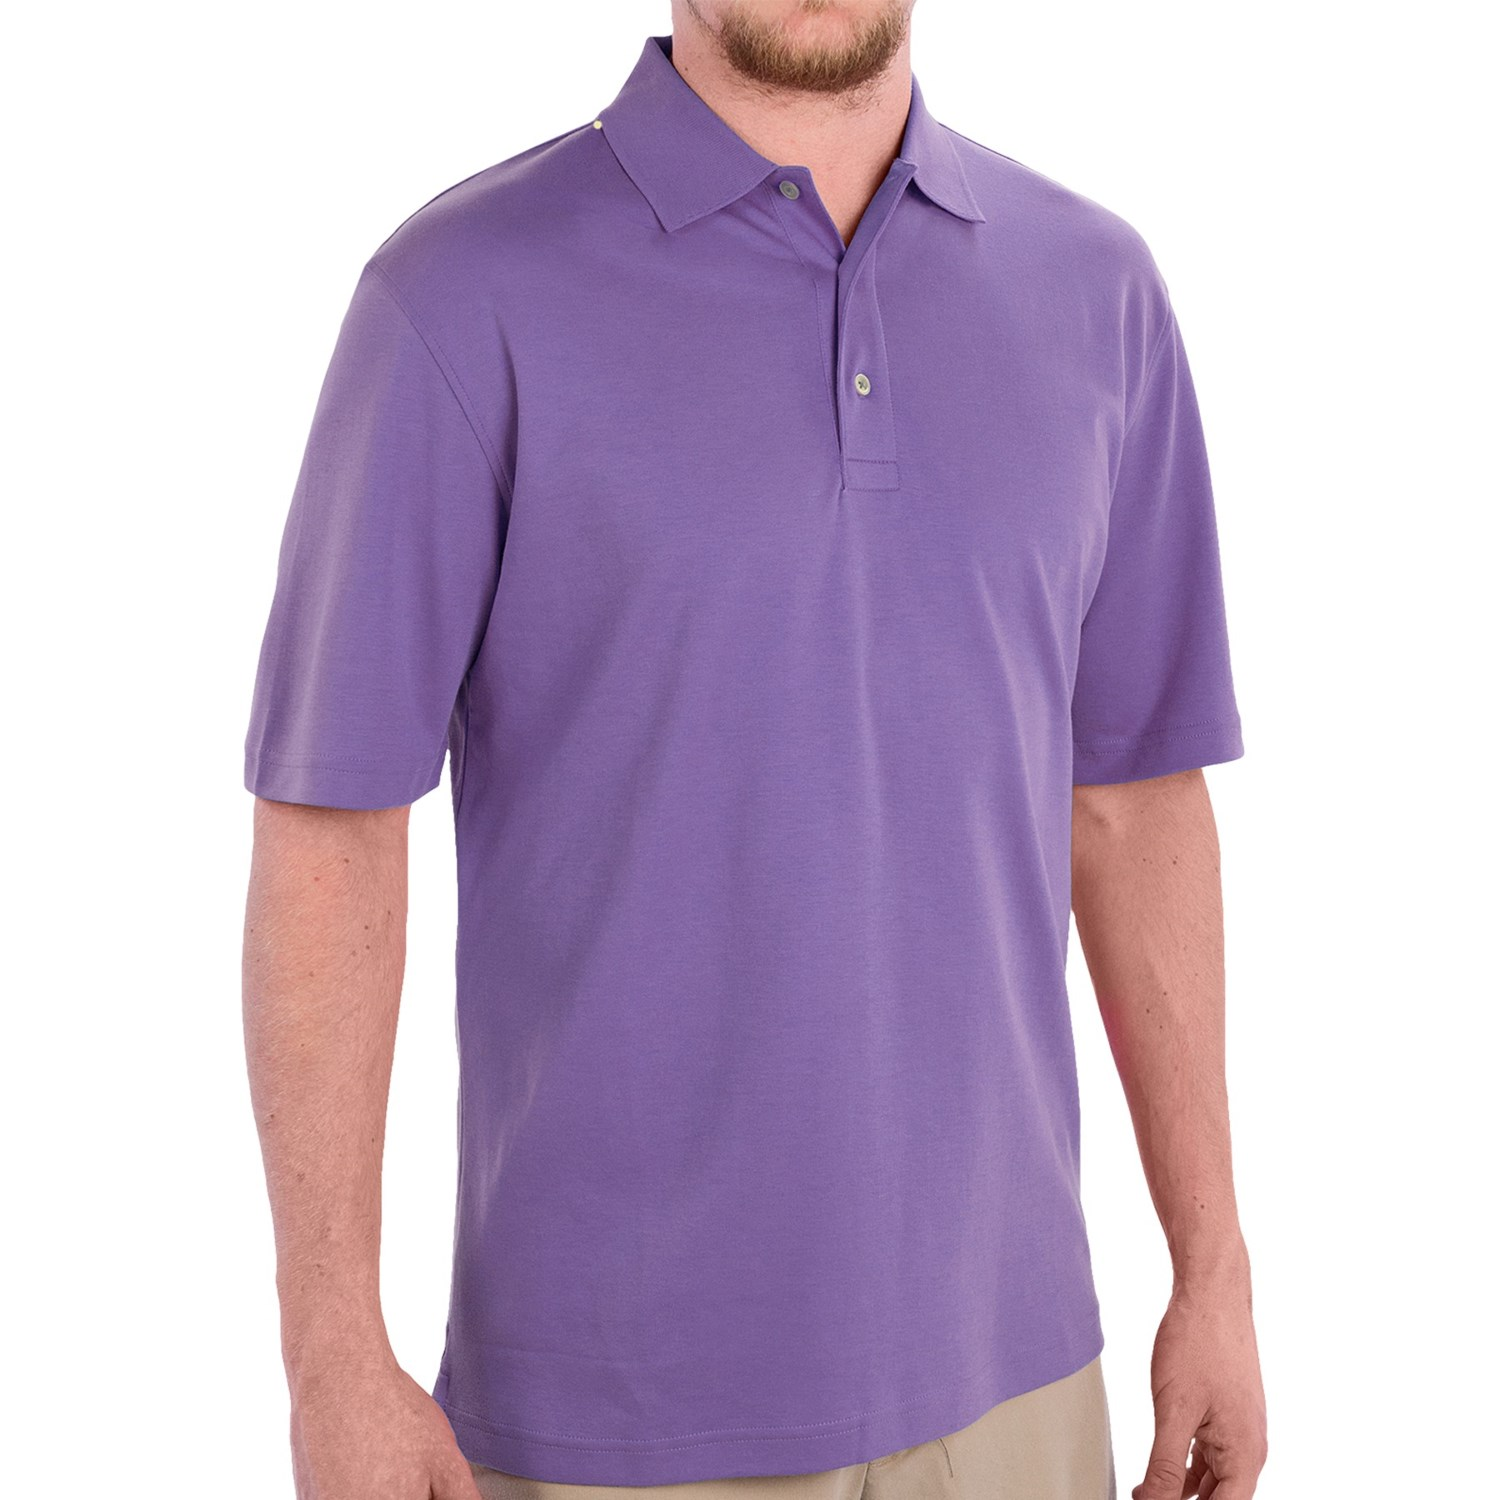 scott barber pima cotton jersey polo shirt for men